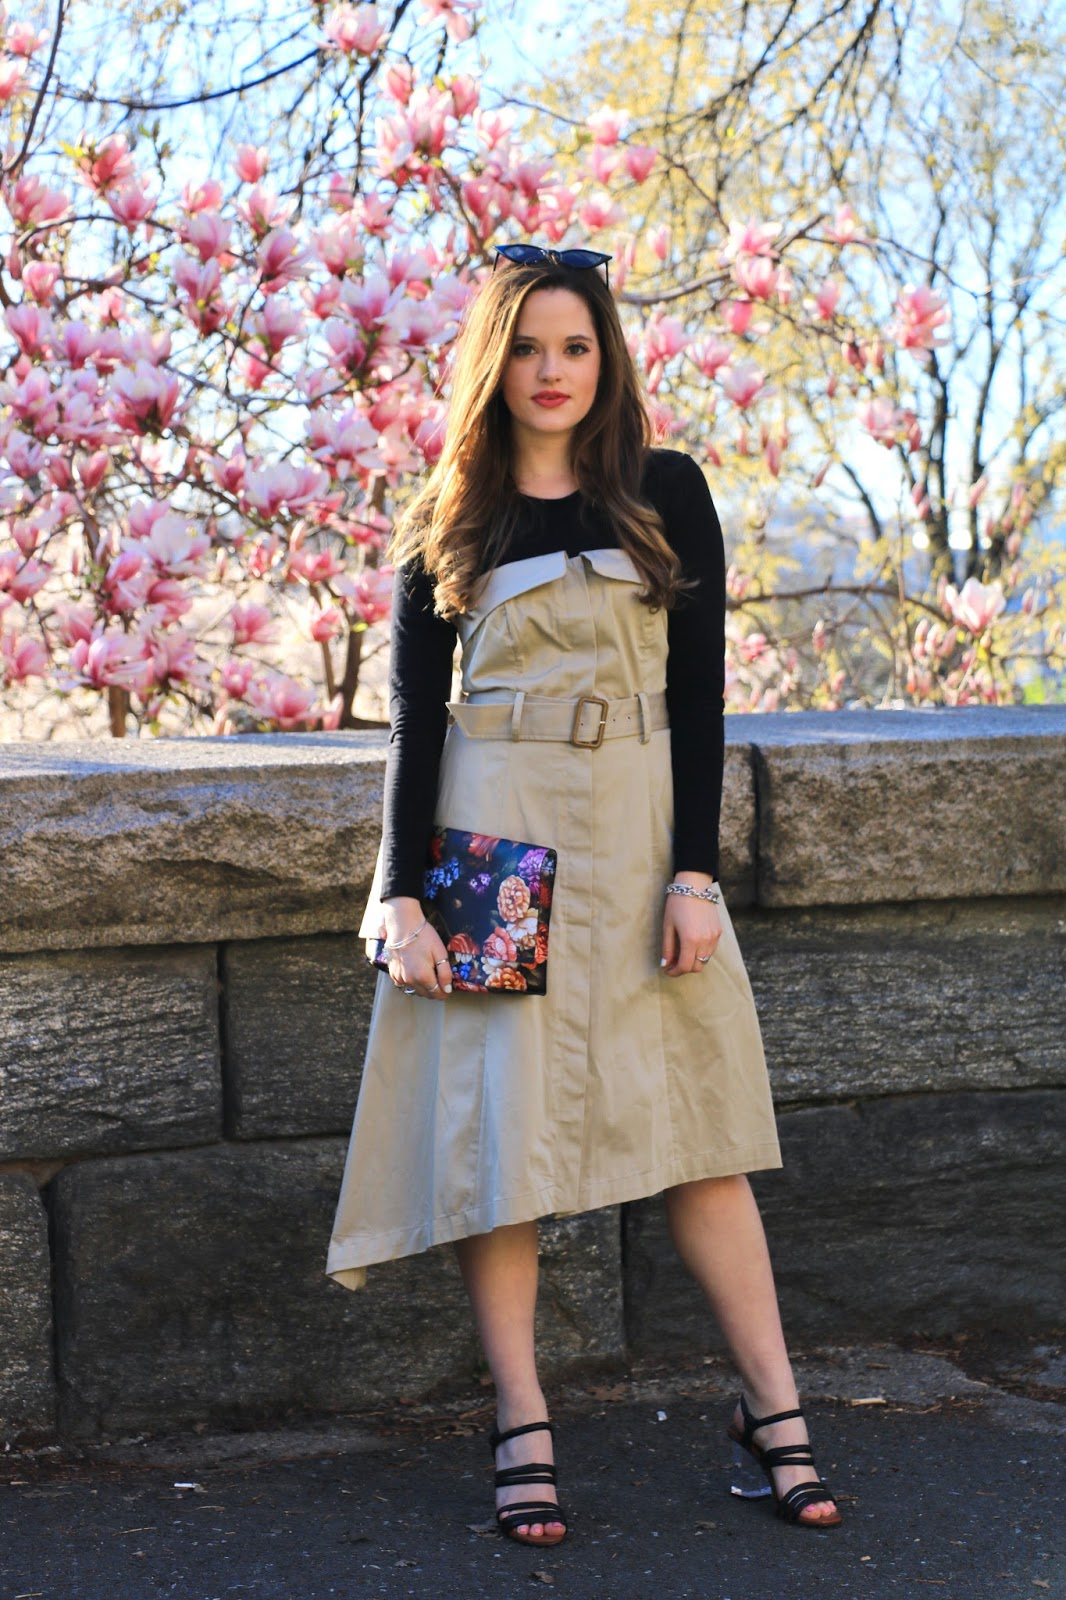 Nyc fashion blogger Kathleen Harper's spring fashion ideas